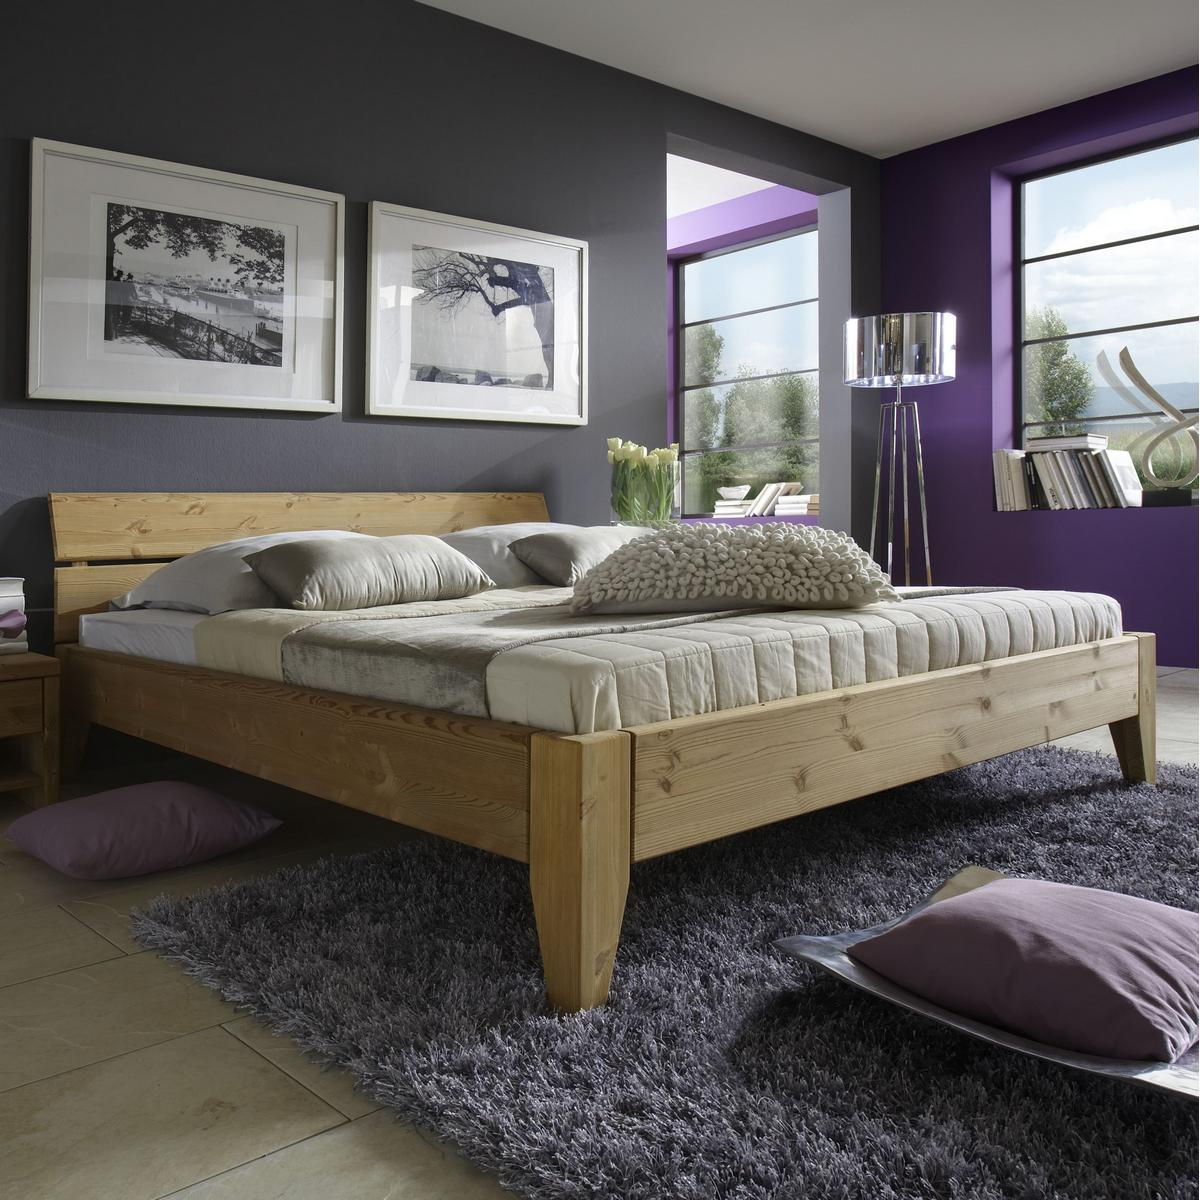 massivholz bett 160x200 easy sleep kiefer massiv gelaugt. Black Bedroom Furniture Sets. Home Design Ideas